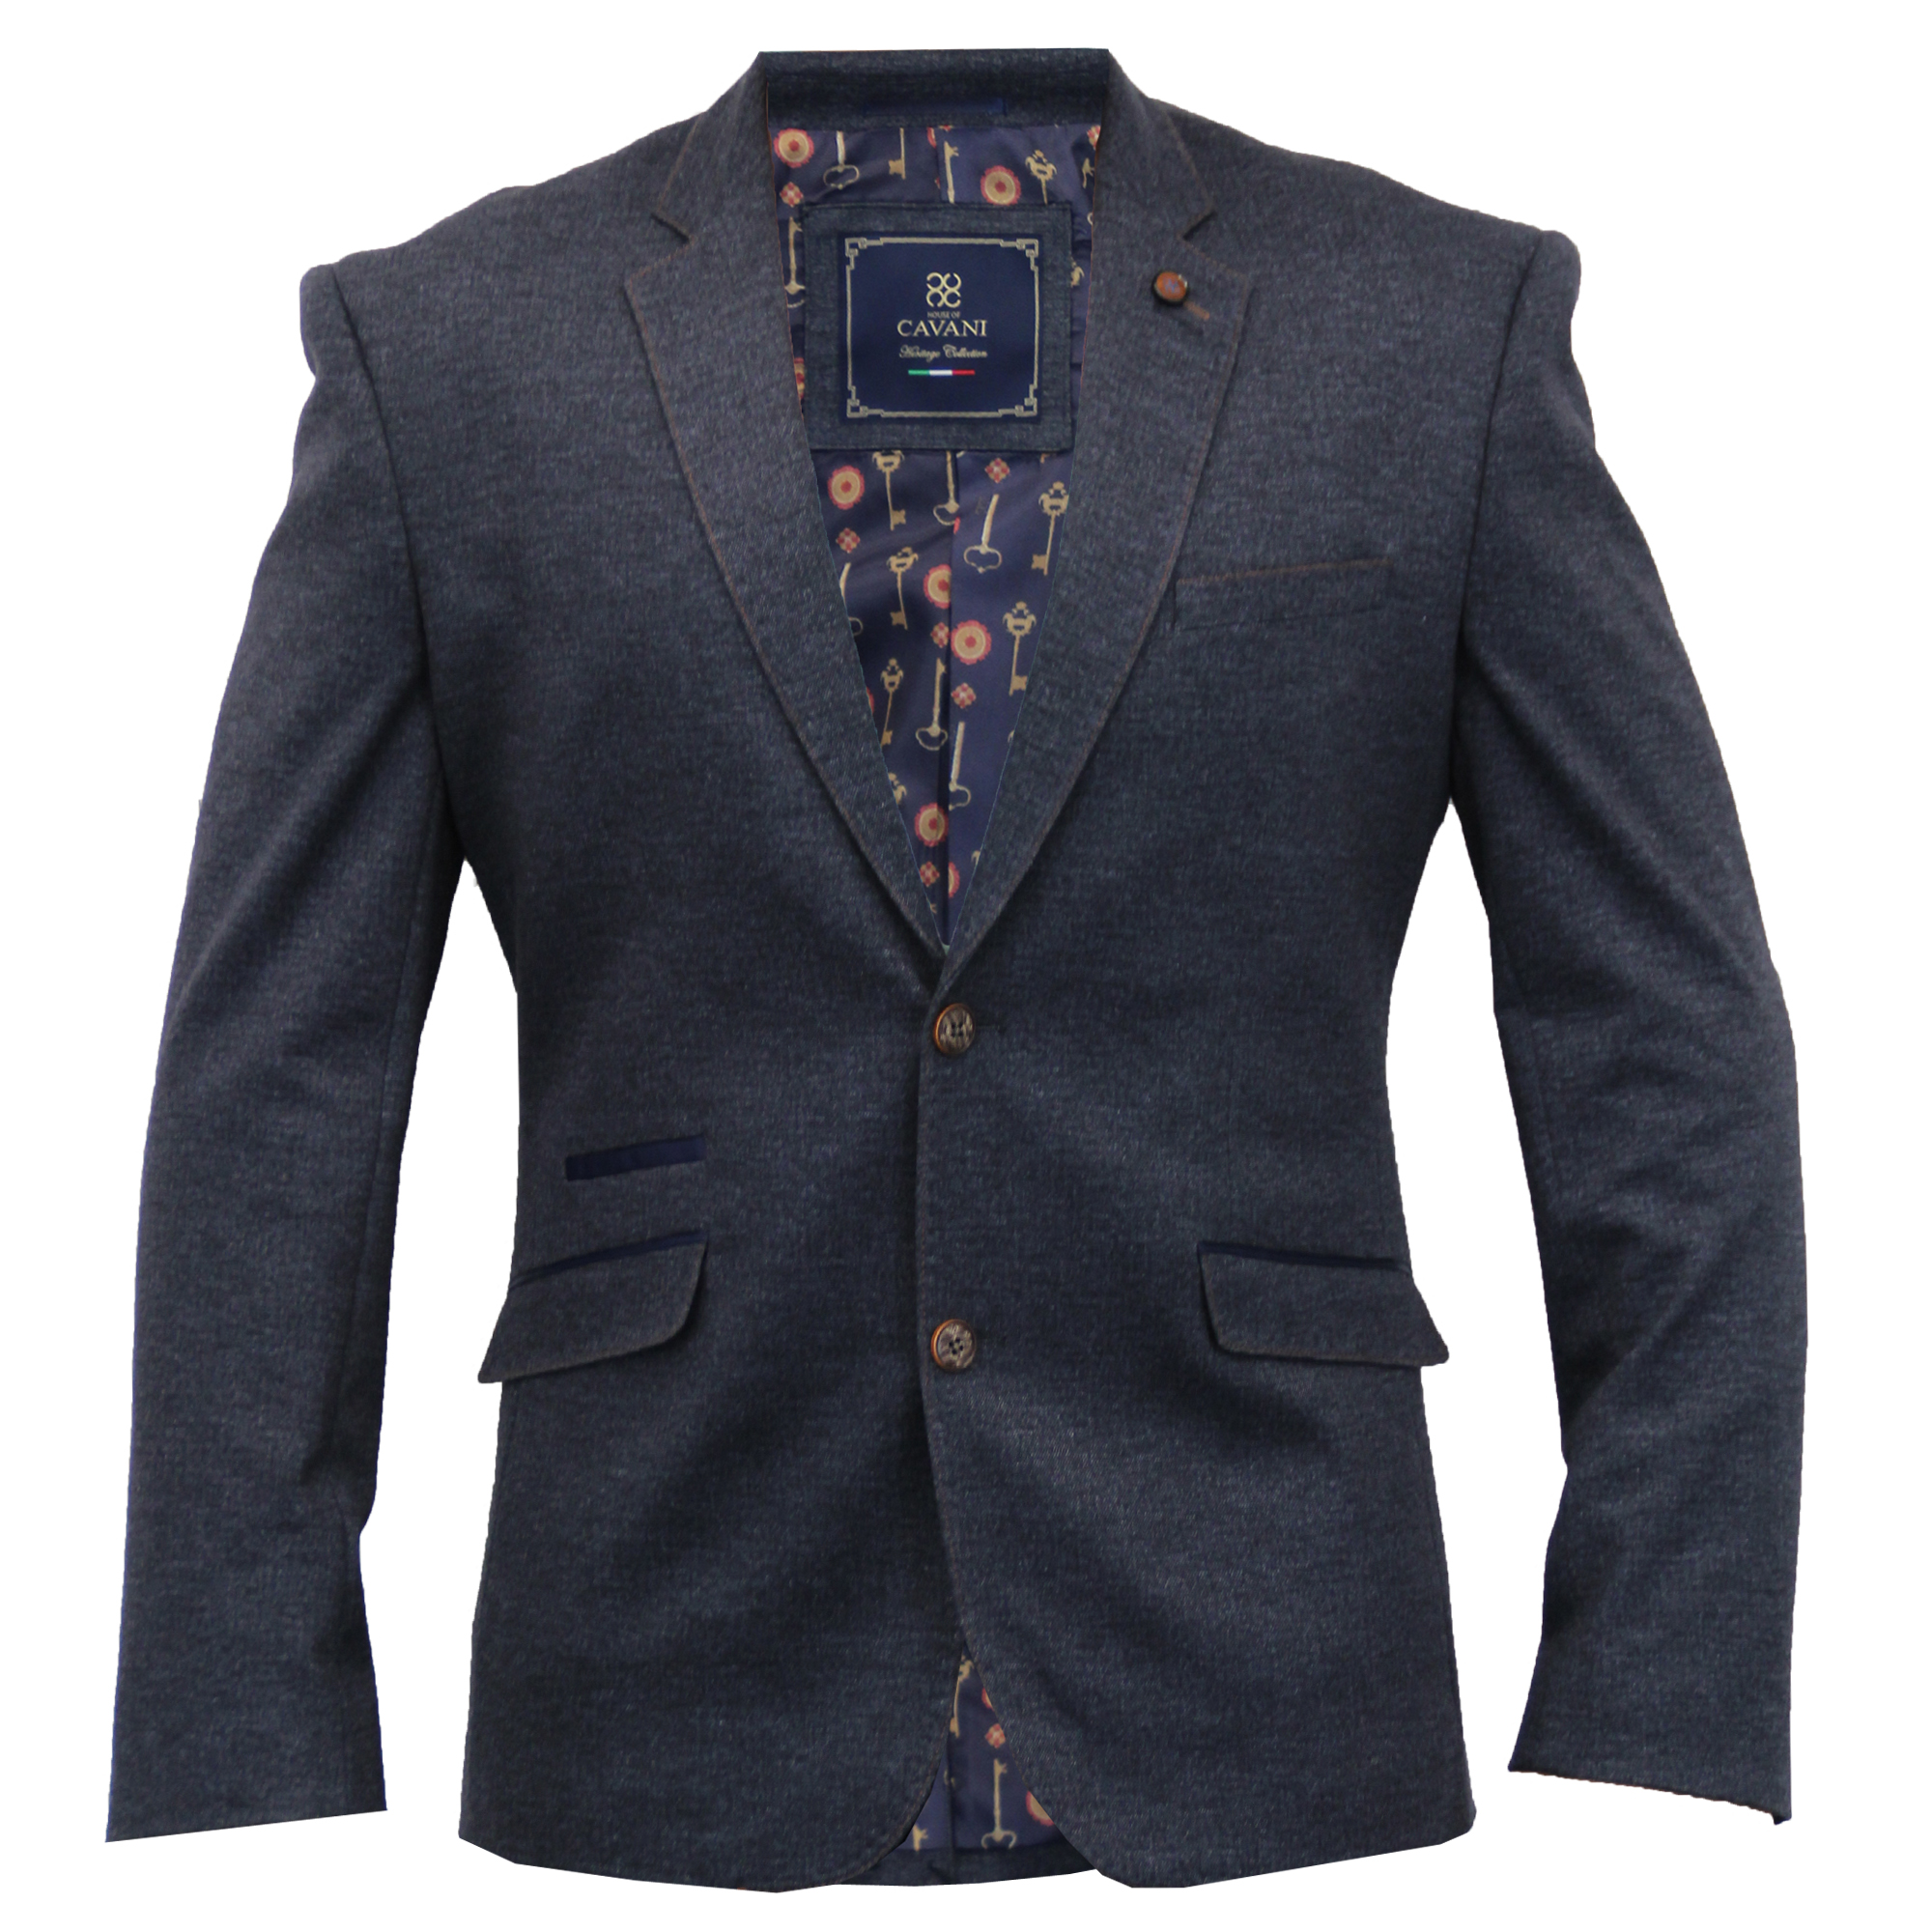 Find great deals on eBay for slim fit blazers. Shop with confidence. Skip to main content. eBay: Men's Suit Coat Tops Business Formal Blazer Slim Fit One Button Casual Jacket. Brand New · Unbranded. $ Buy It Now +$ shipping. Men's Casual Slim Fit One Button Suit Blazer .